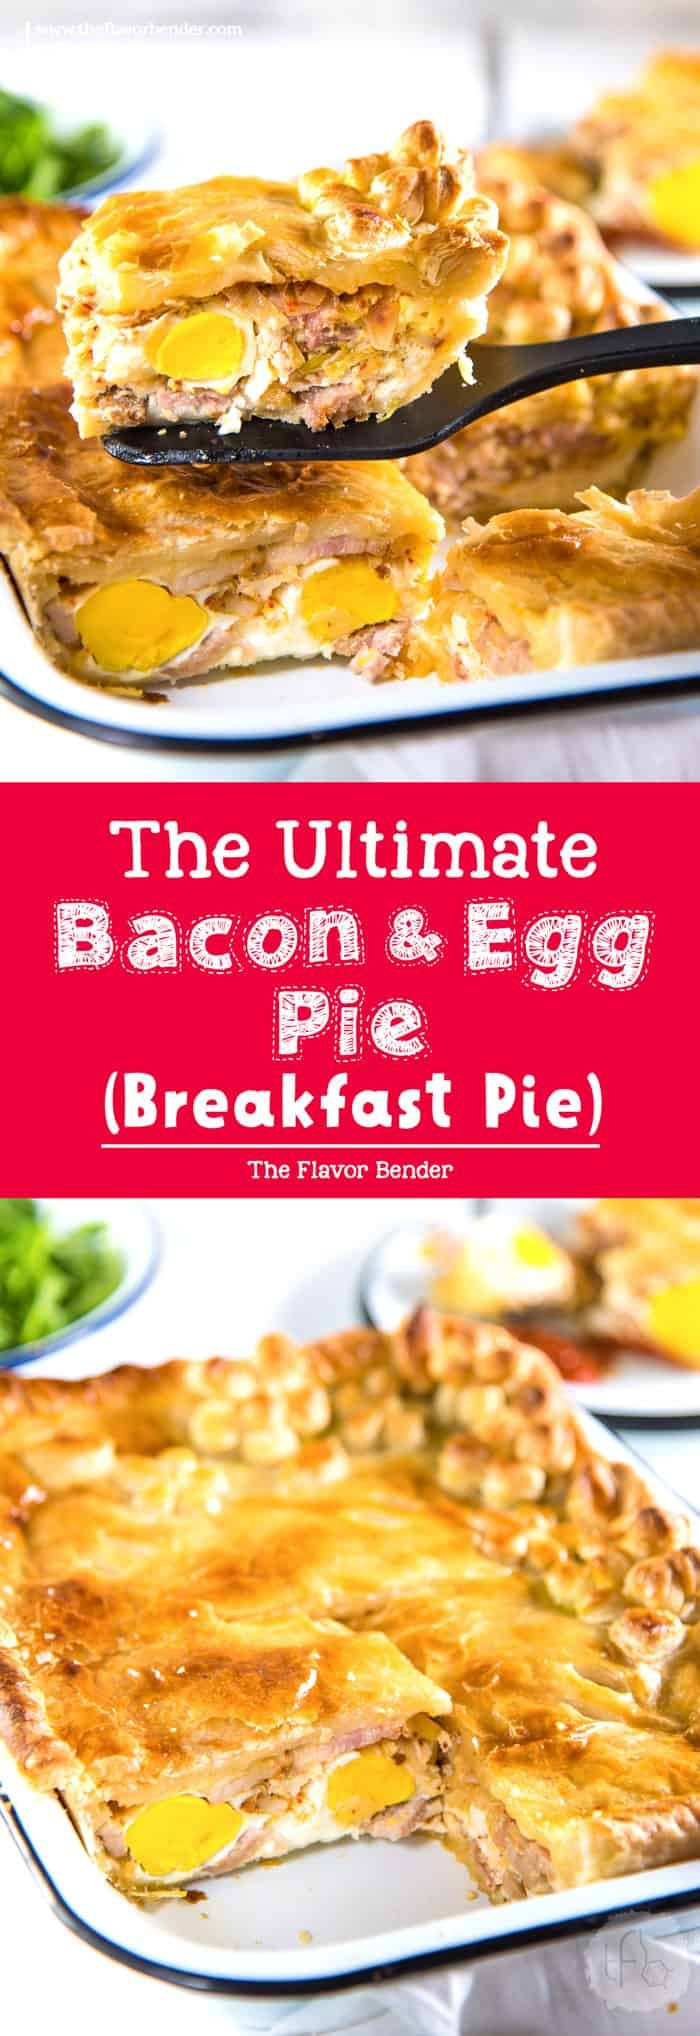 Ultimate Bacon and egg pies (breakfast pies) are a New Zealand classic with smokey bacon and eggs, leeks, cheese and flaky puff pastry! Perfect for breakfast, brunch or even as breakfast for dinner! via @theflavorbender